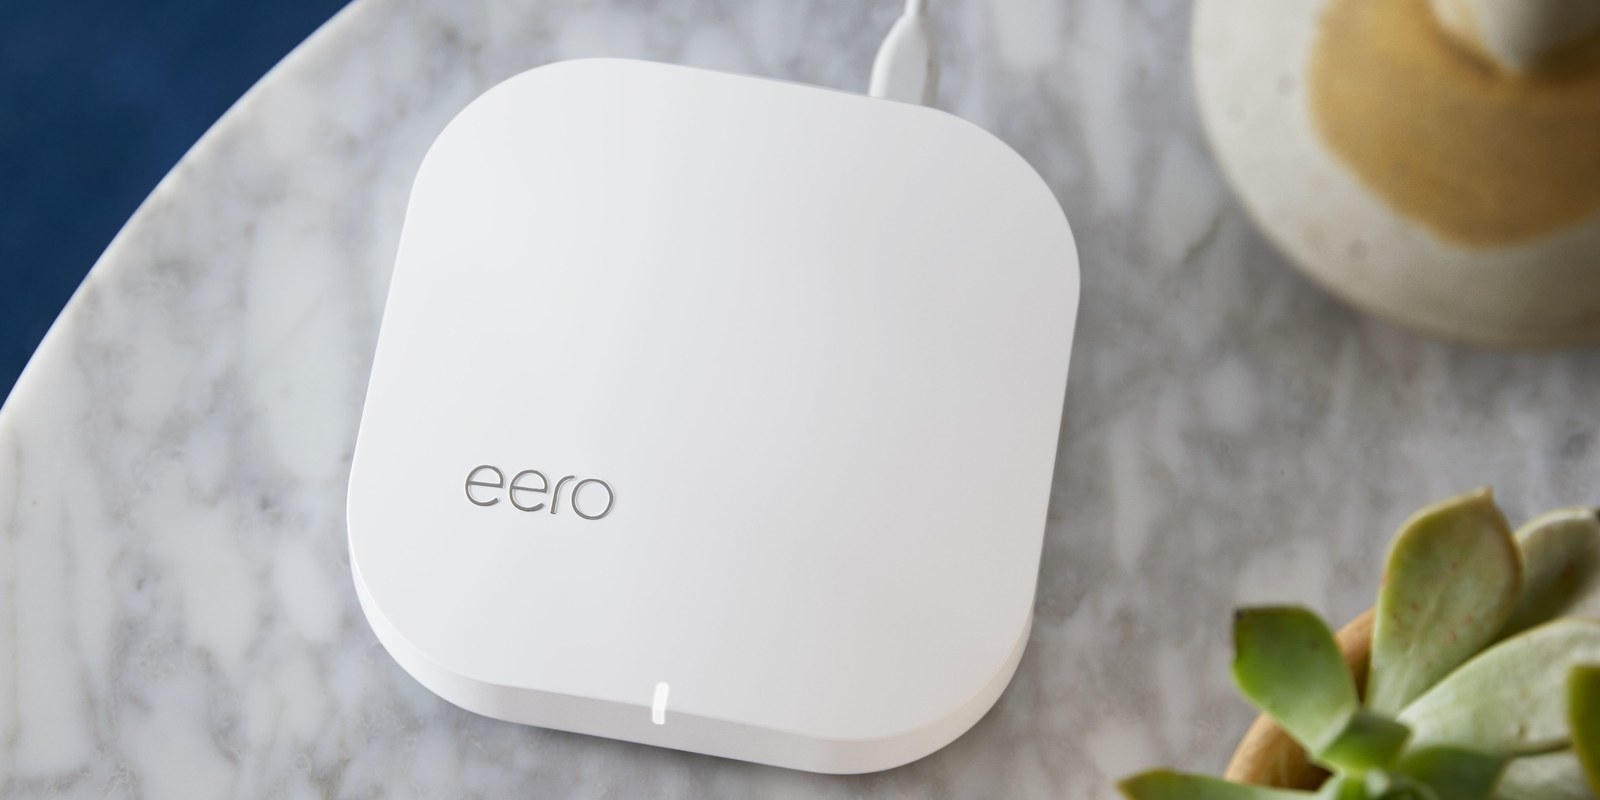 Here's What Amazon's Eero Acquisition Means